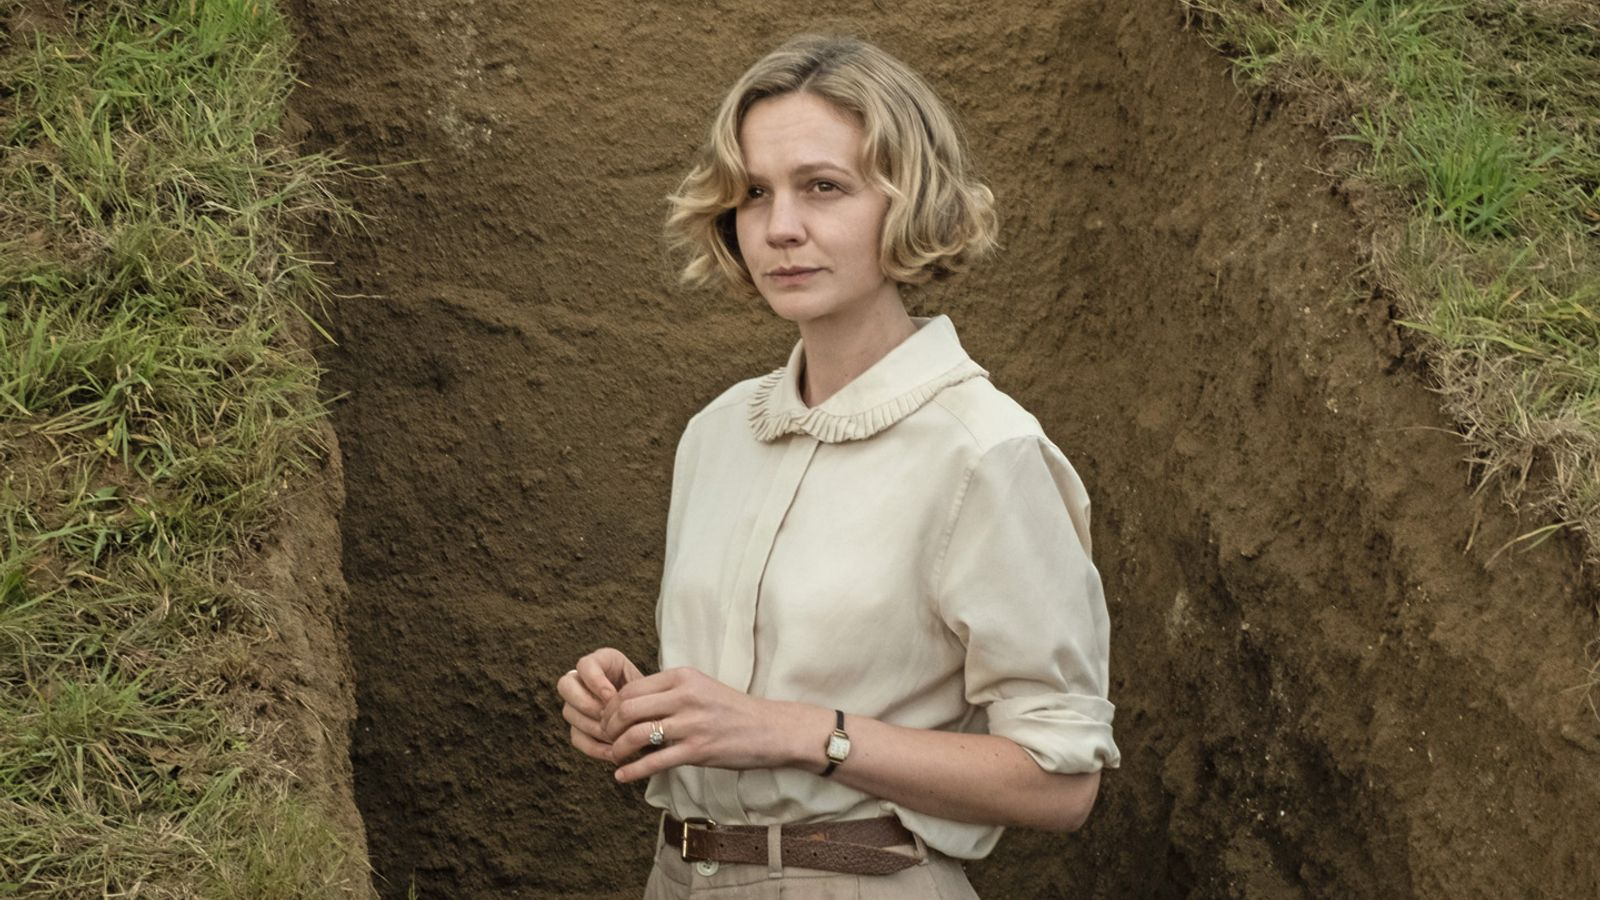 Carey Mulligan on The Dig: 'Platonic leads are very rare on screen… This is different' - Sky News